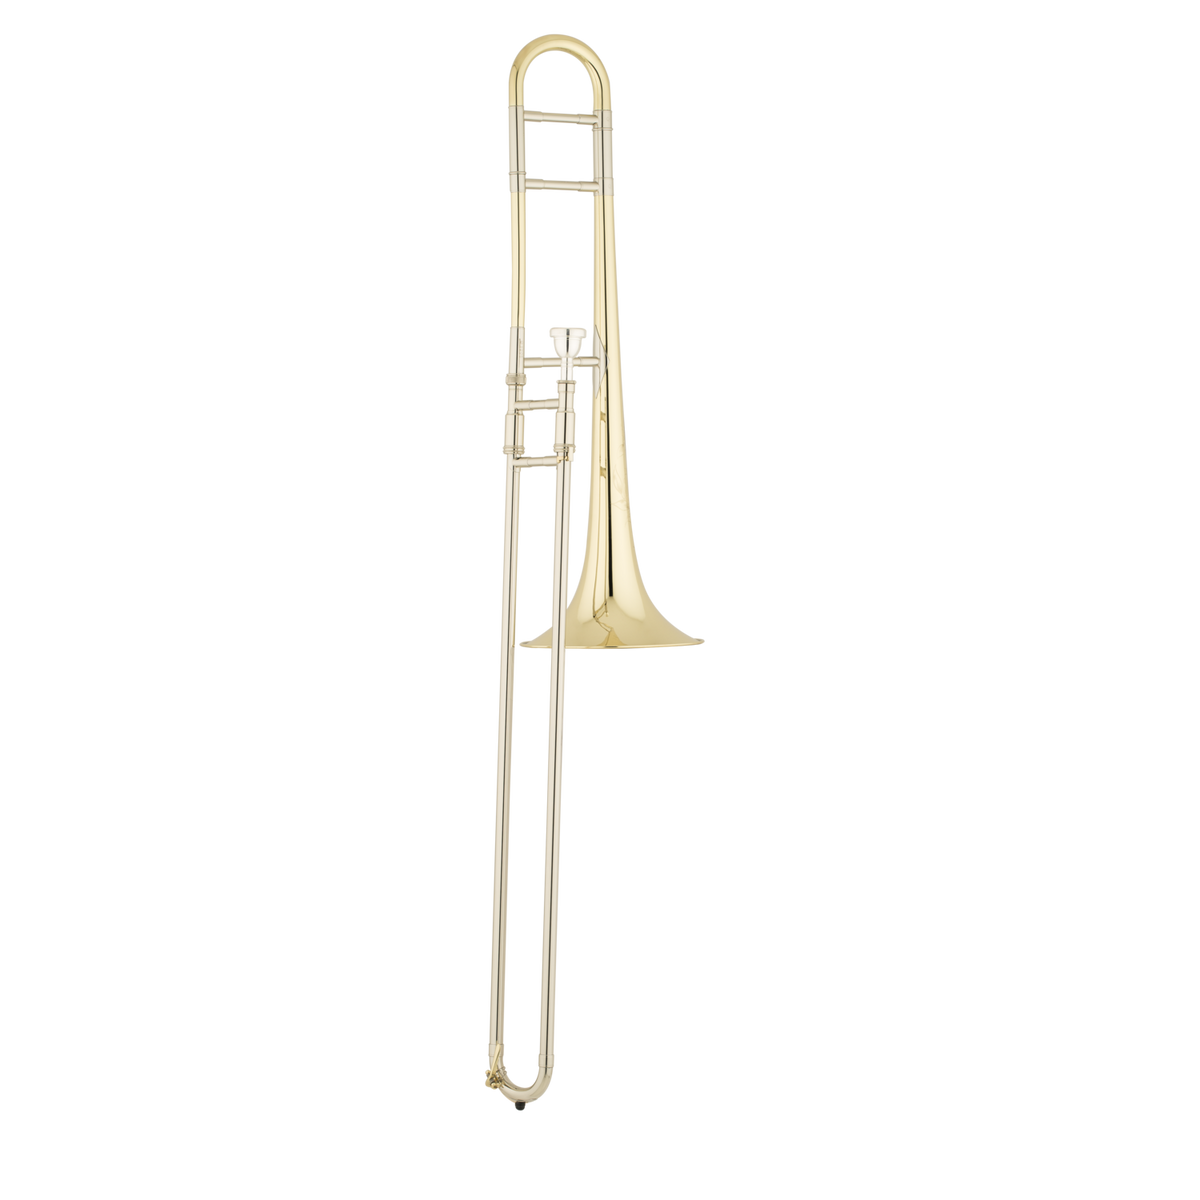 S.E. Shires - Q33 - Q Series Small Bore Tenor Trombone-Trombone-S.E. Shires-Music Elements